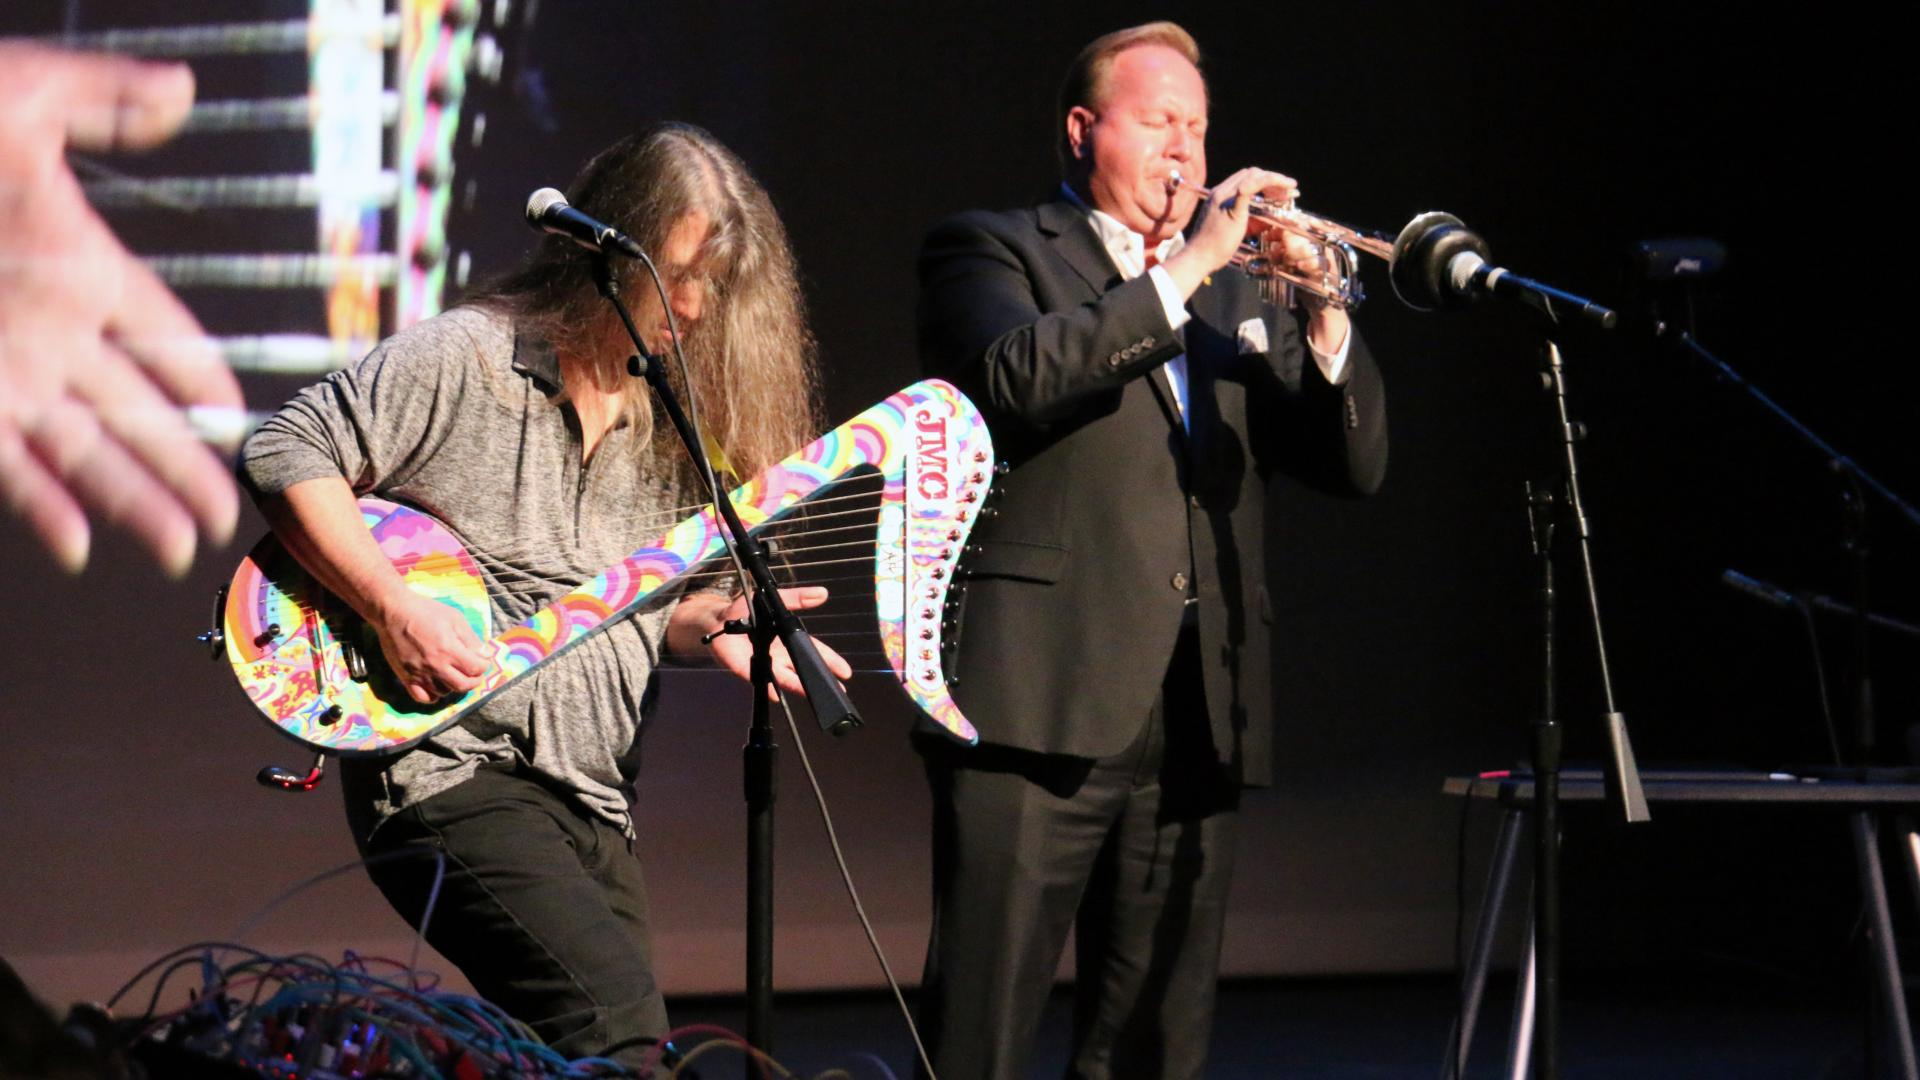 Joseph P. LoSchiavo performs with the Galaxy Electric Harp while School of Music professor Chip Crotts performs on a trumpet.